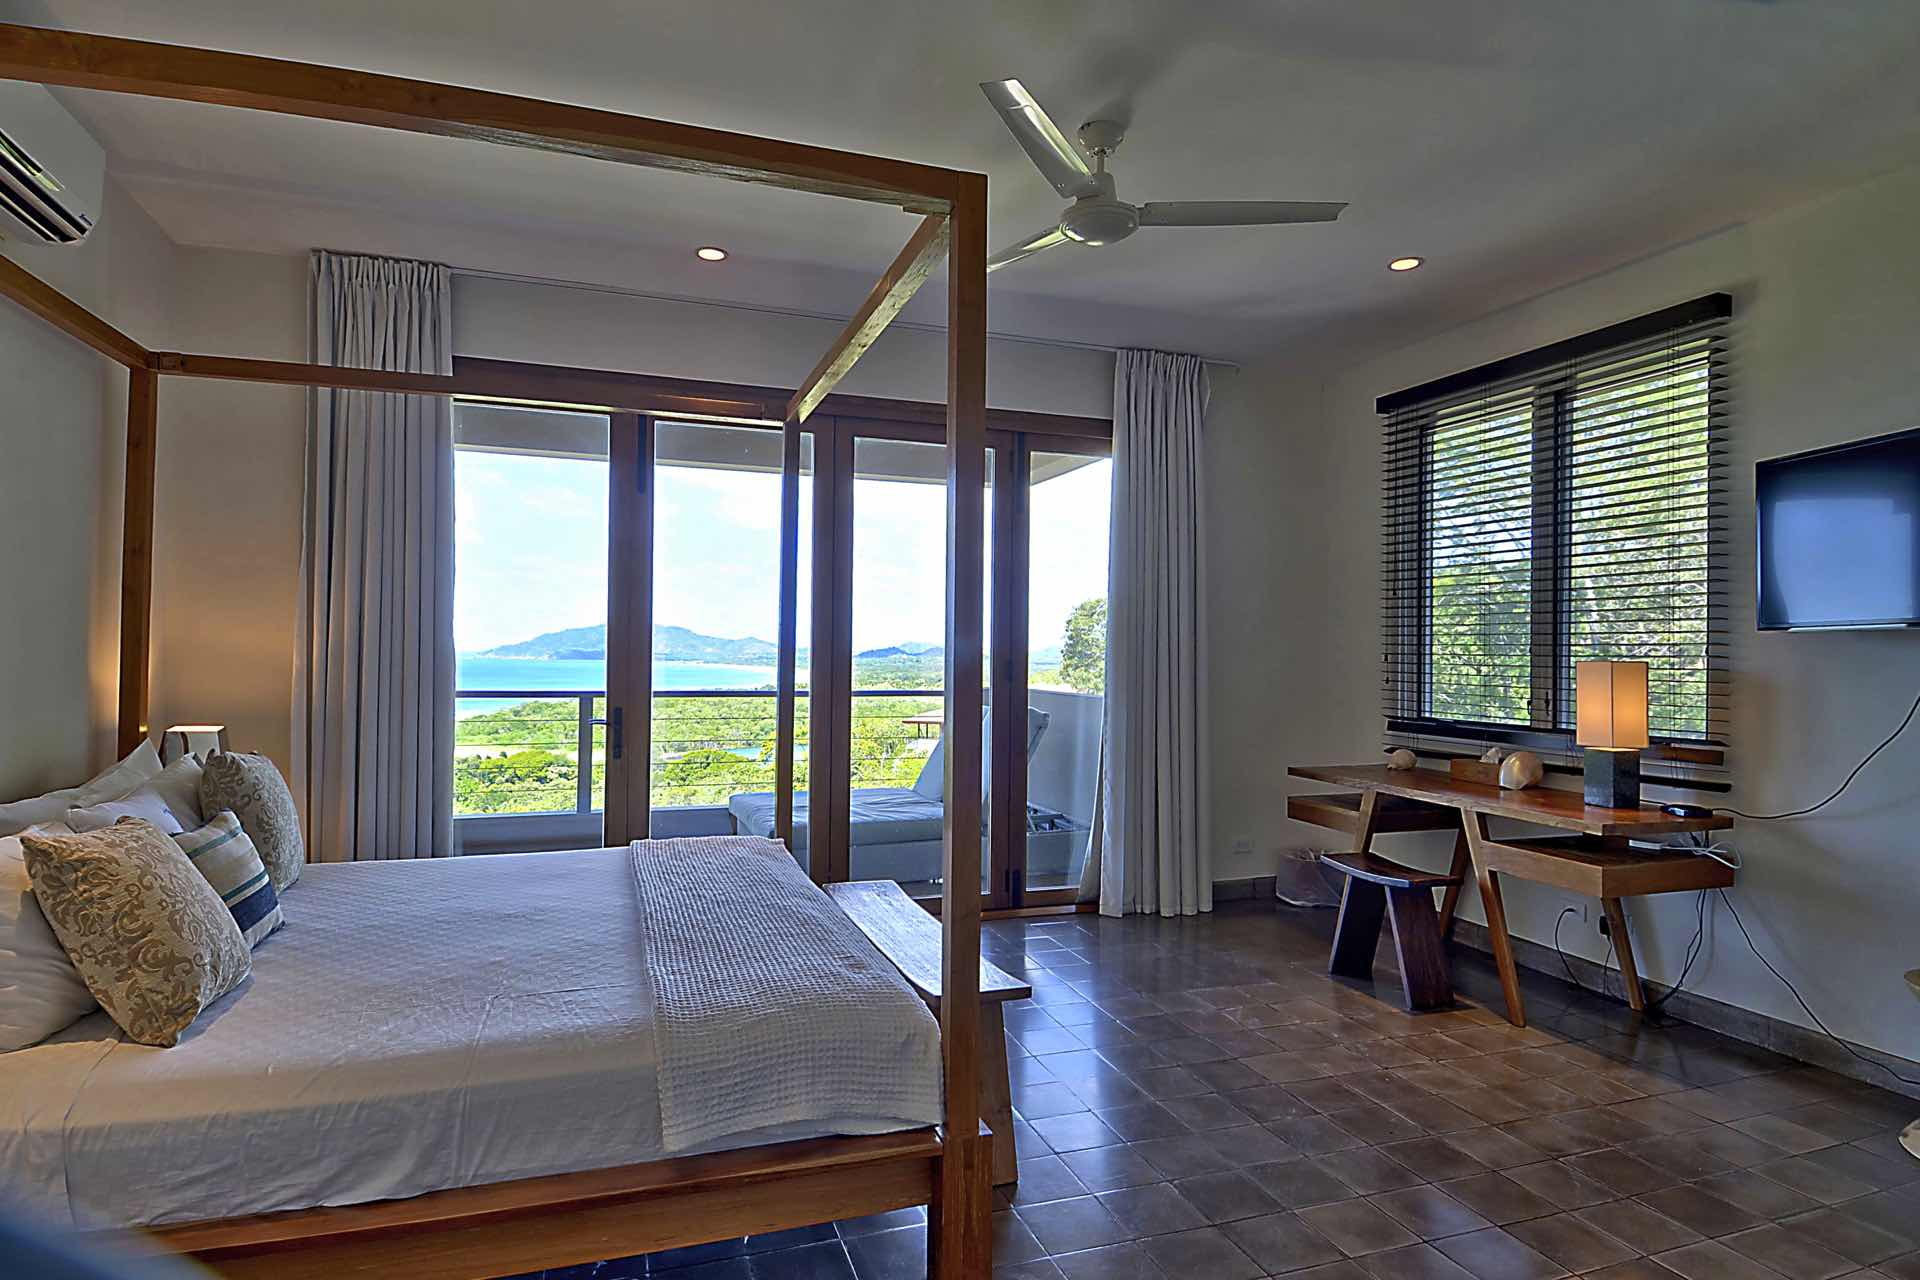 Master bedroom with spectacular view